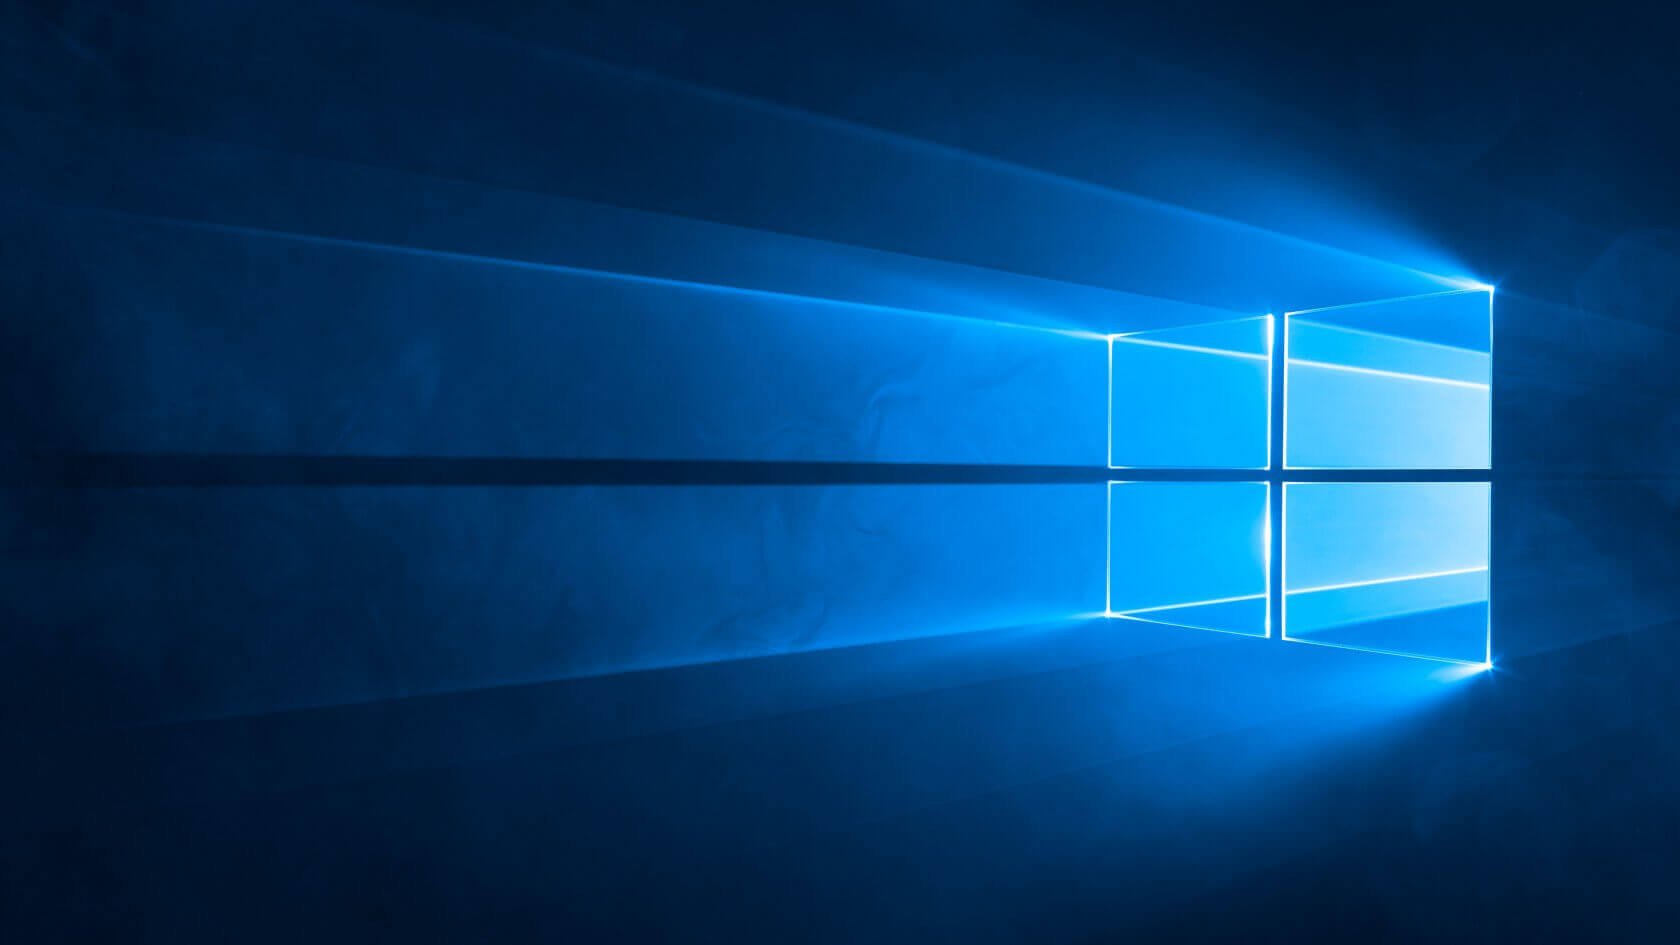 Windows 10's next major update could improve system performance with tweaked search indexer